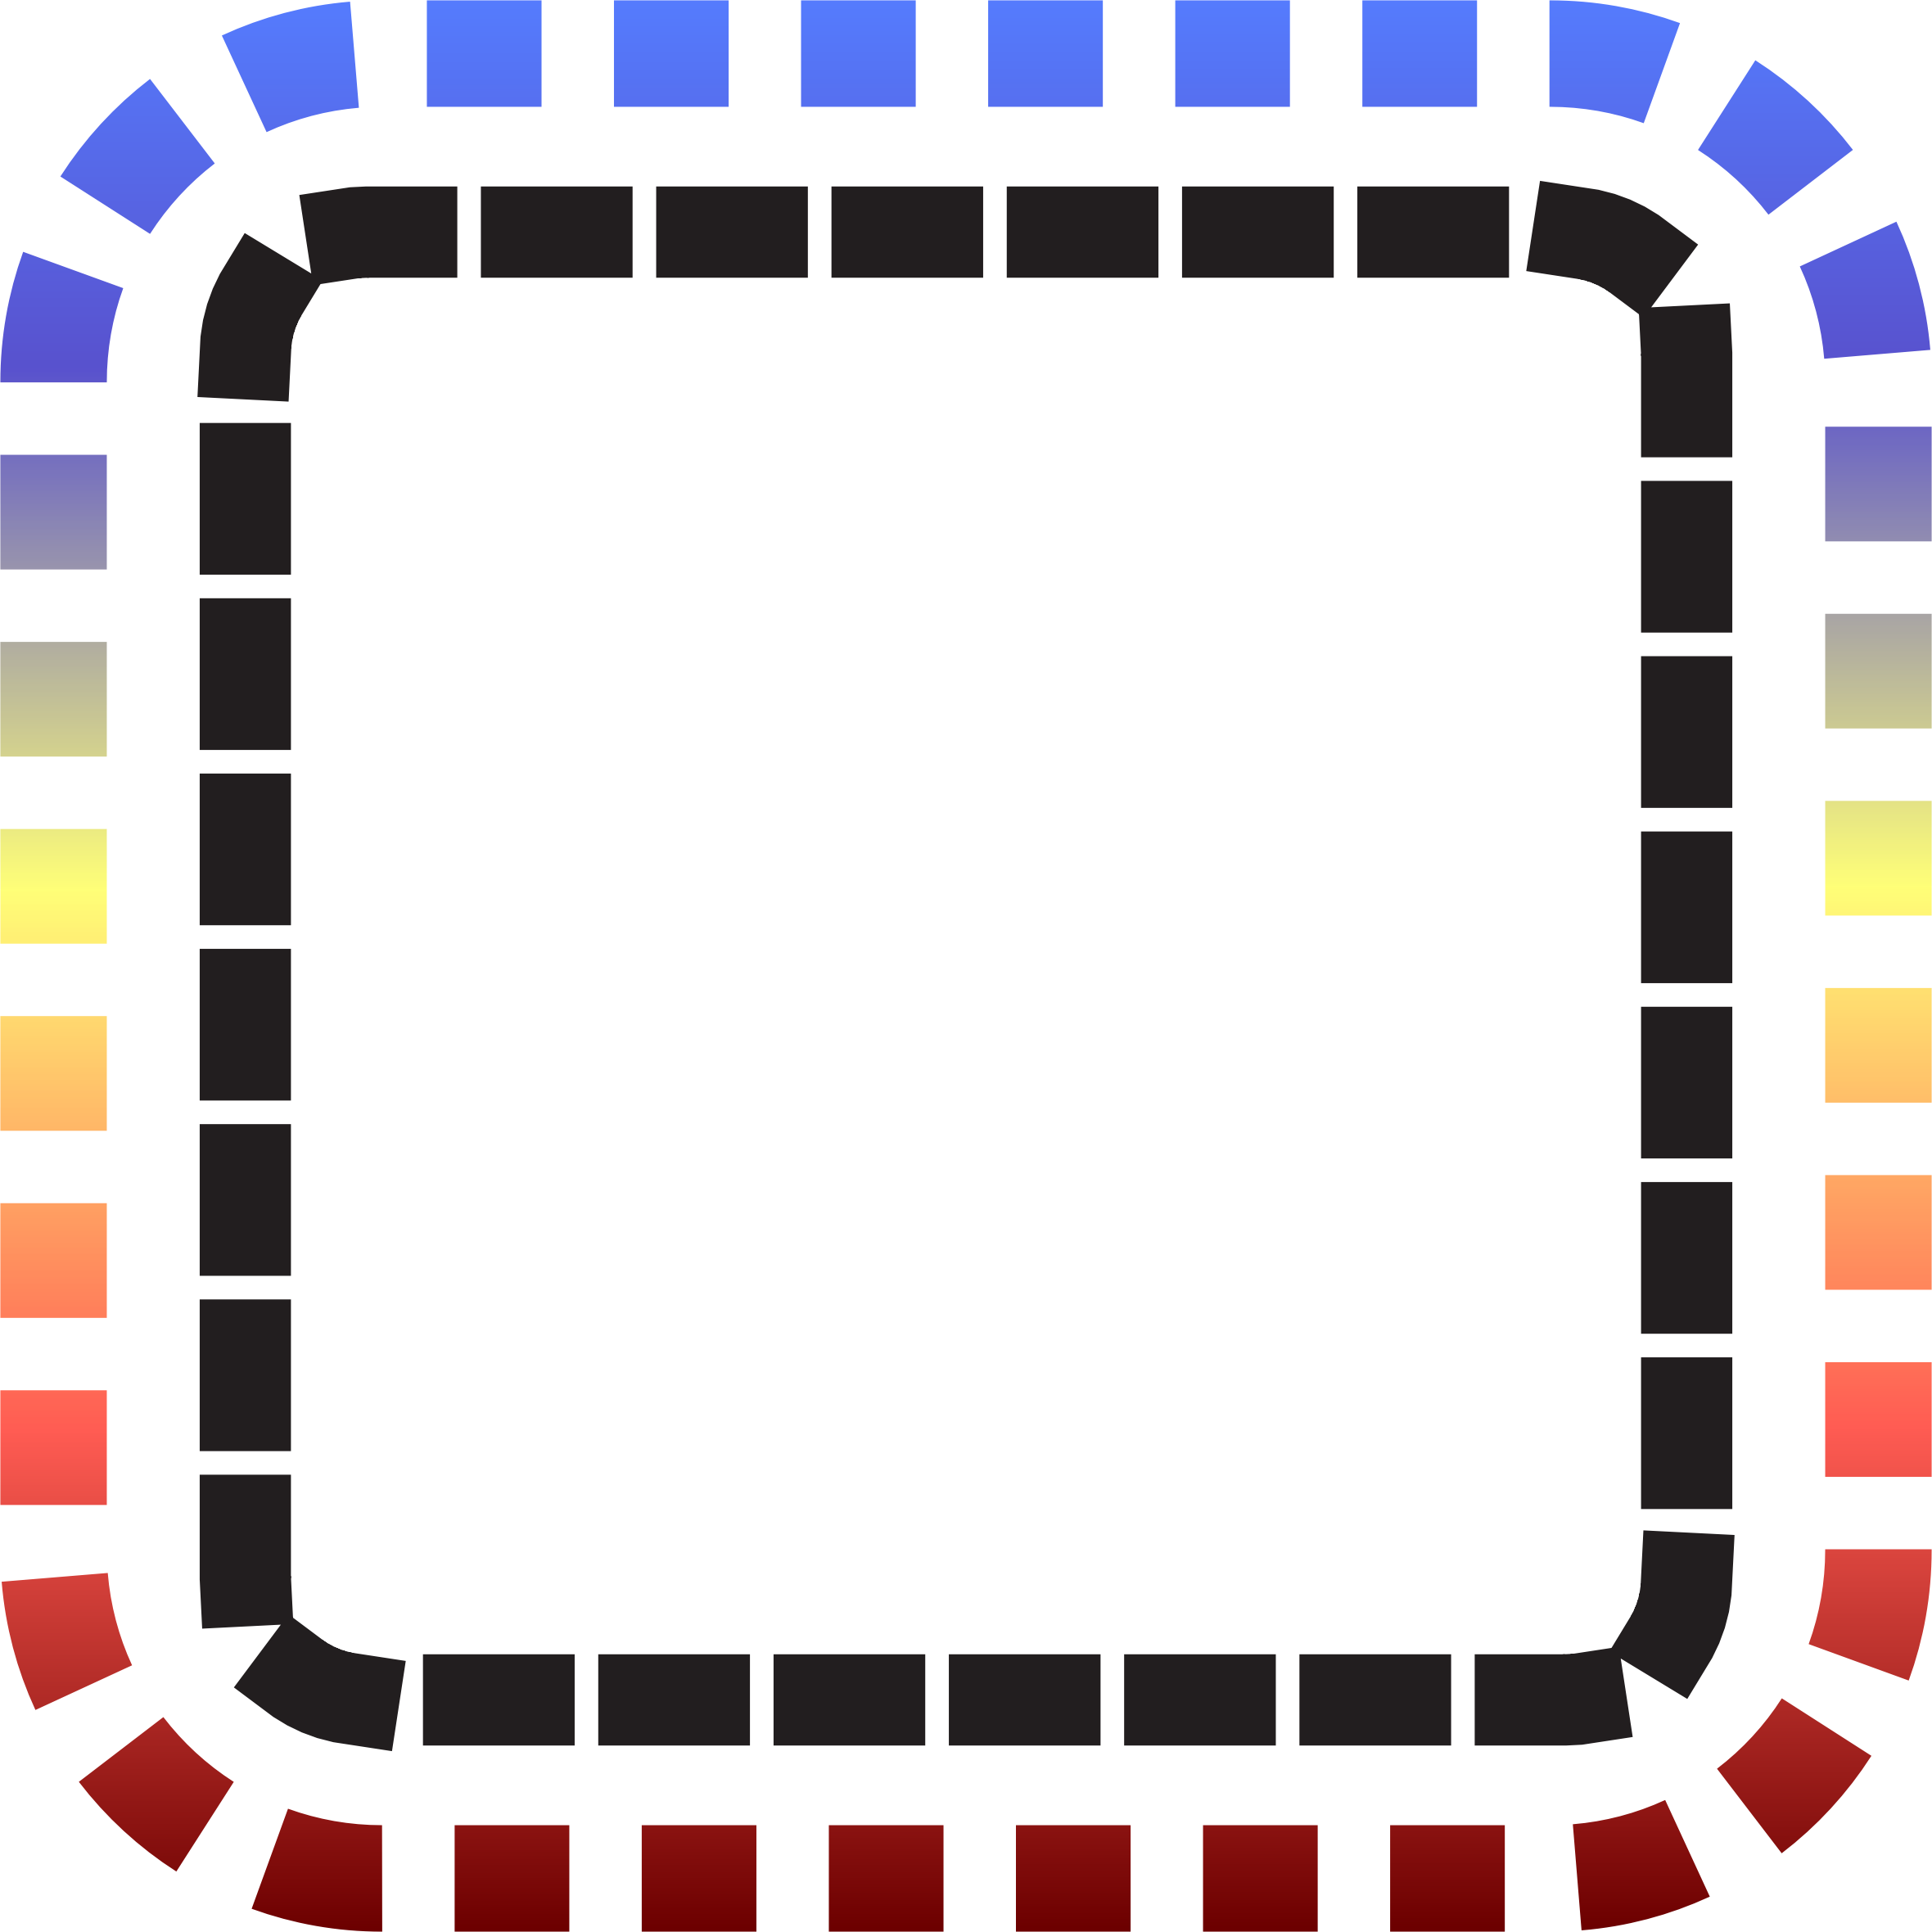 Frame big image png. Square clipart colorful square